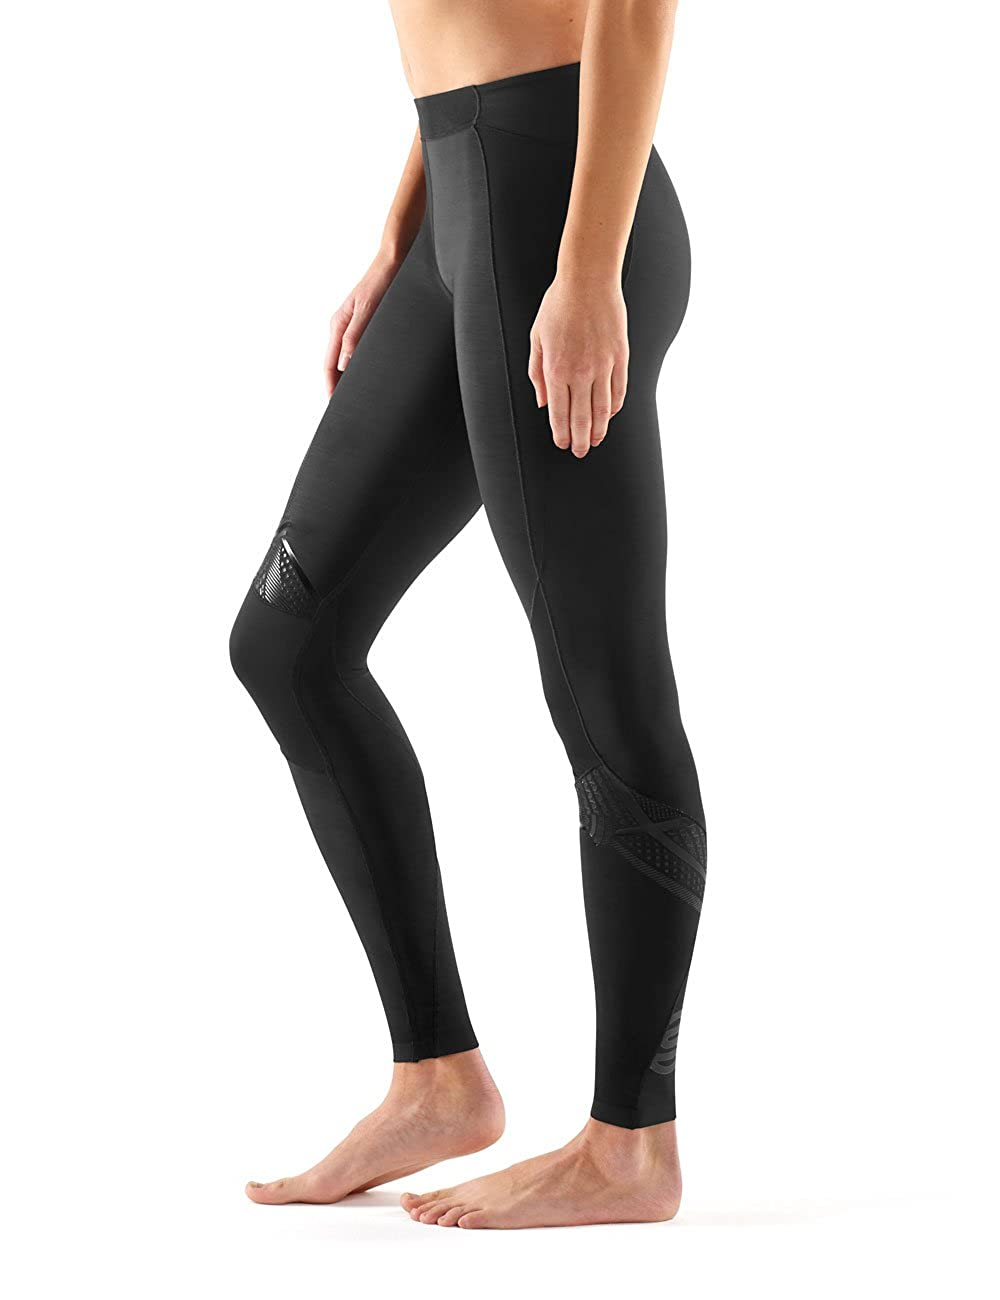 fff9916643 Amazon.com : Skins Women's A400 Compression Long Tights : Clothing